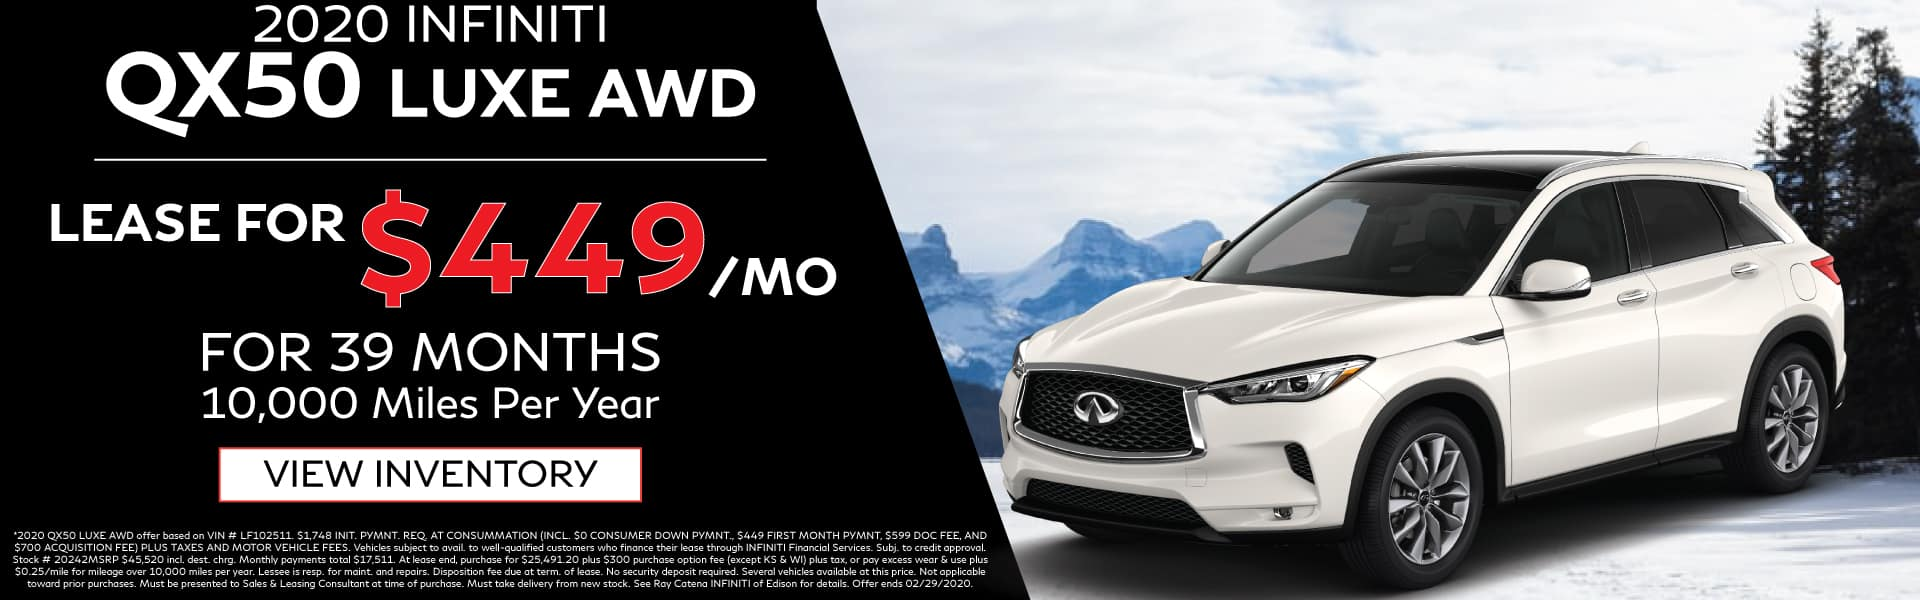 2020 INFINITI QX50 Luxe AWD. Lease for $449 a month for 39 months. 10,000 miles per year. See retailer for complete details. Image is of a 2020 QX50 on the snow next to a mountainside.